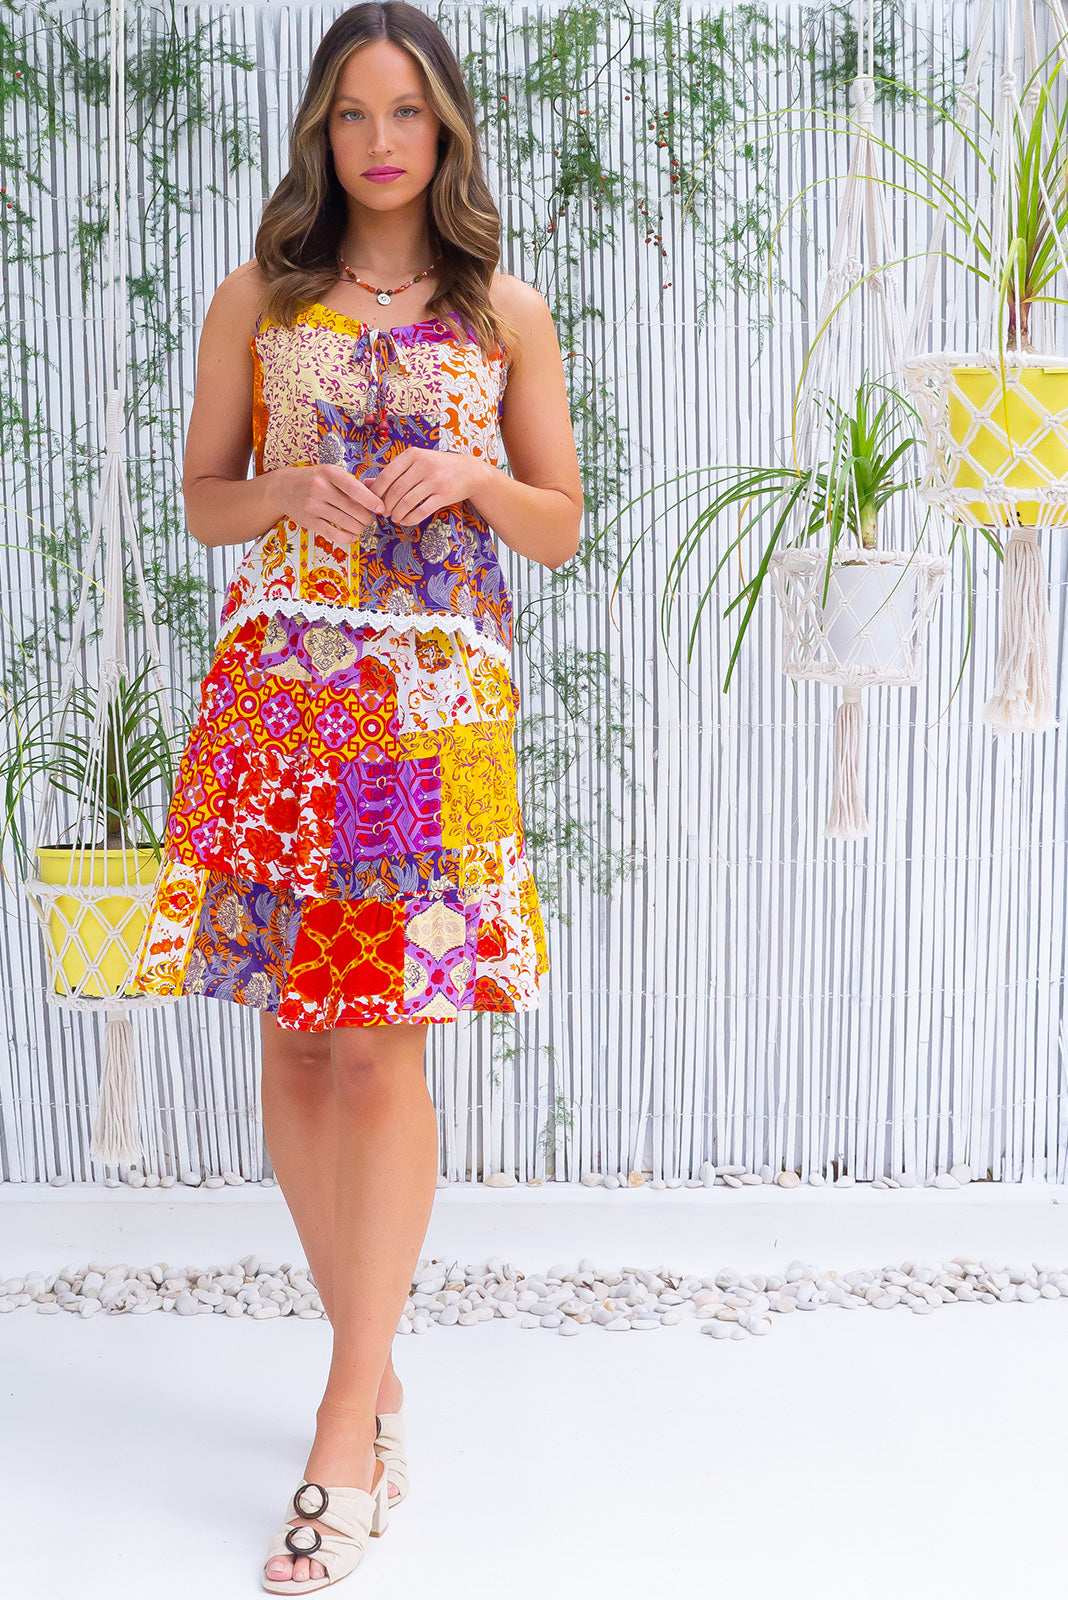 The Valencia Golden Hour Mini Skirt features elasticated back waistband, comfortable pull-on style, tiered for flirty fullness, side pockets and cotton, viscose blended fabric in vvibrant purple, pink, yellow and orange patchwork print.